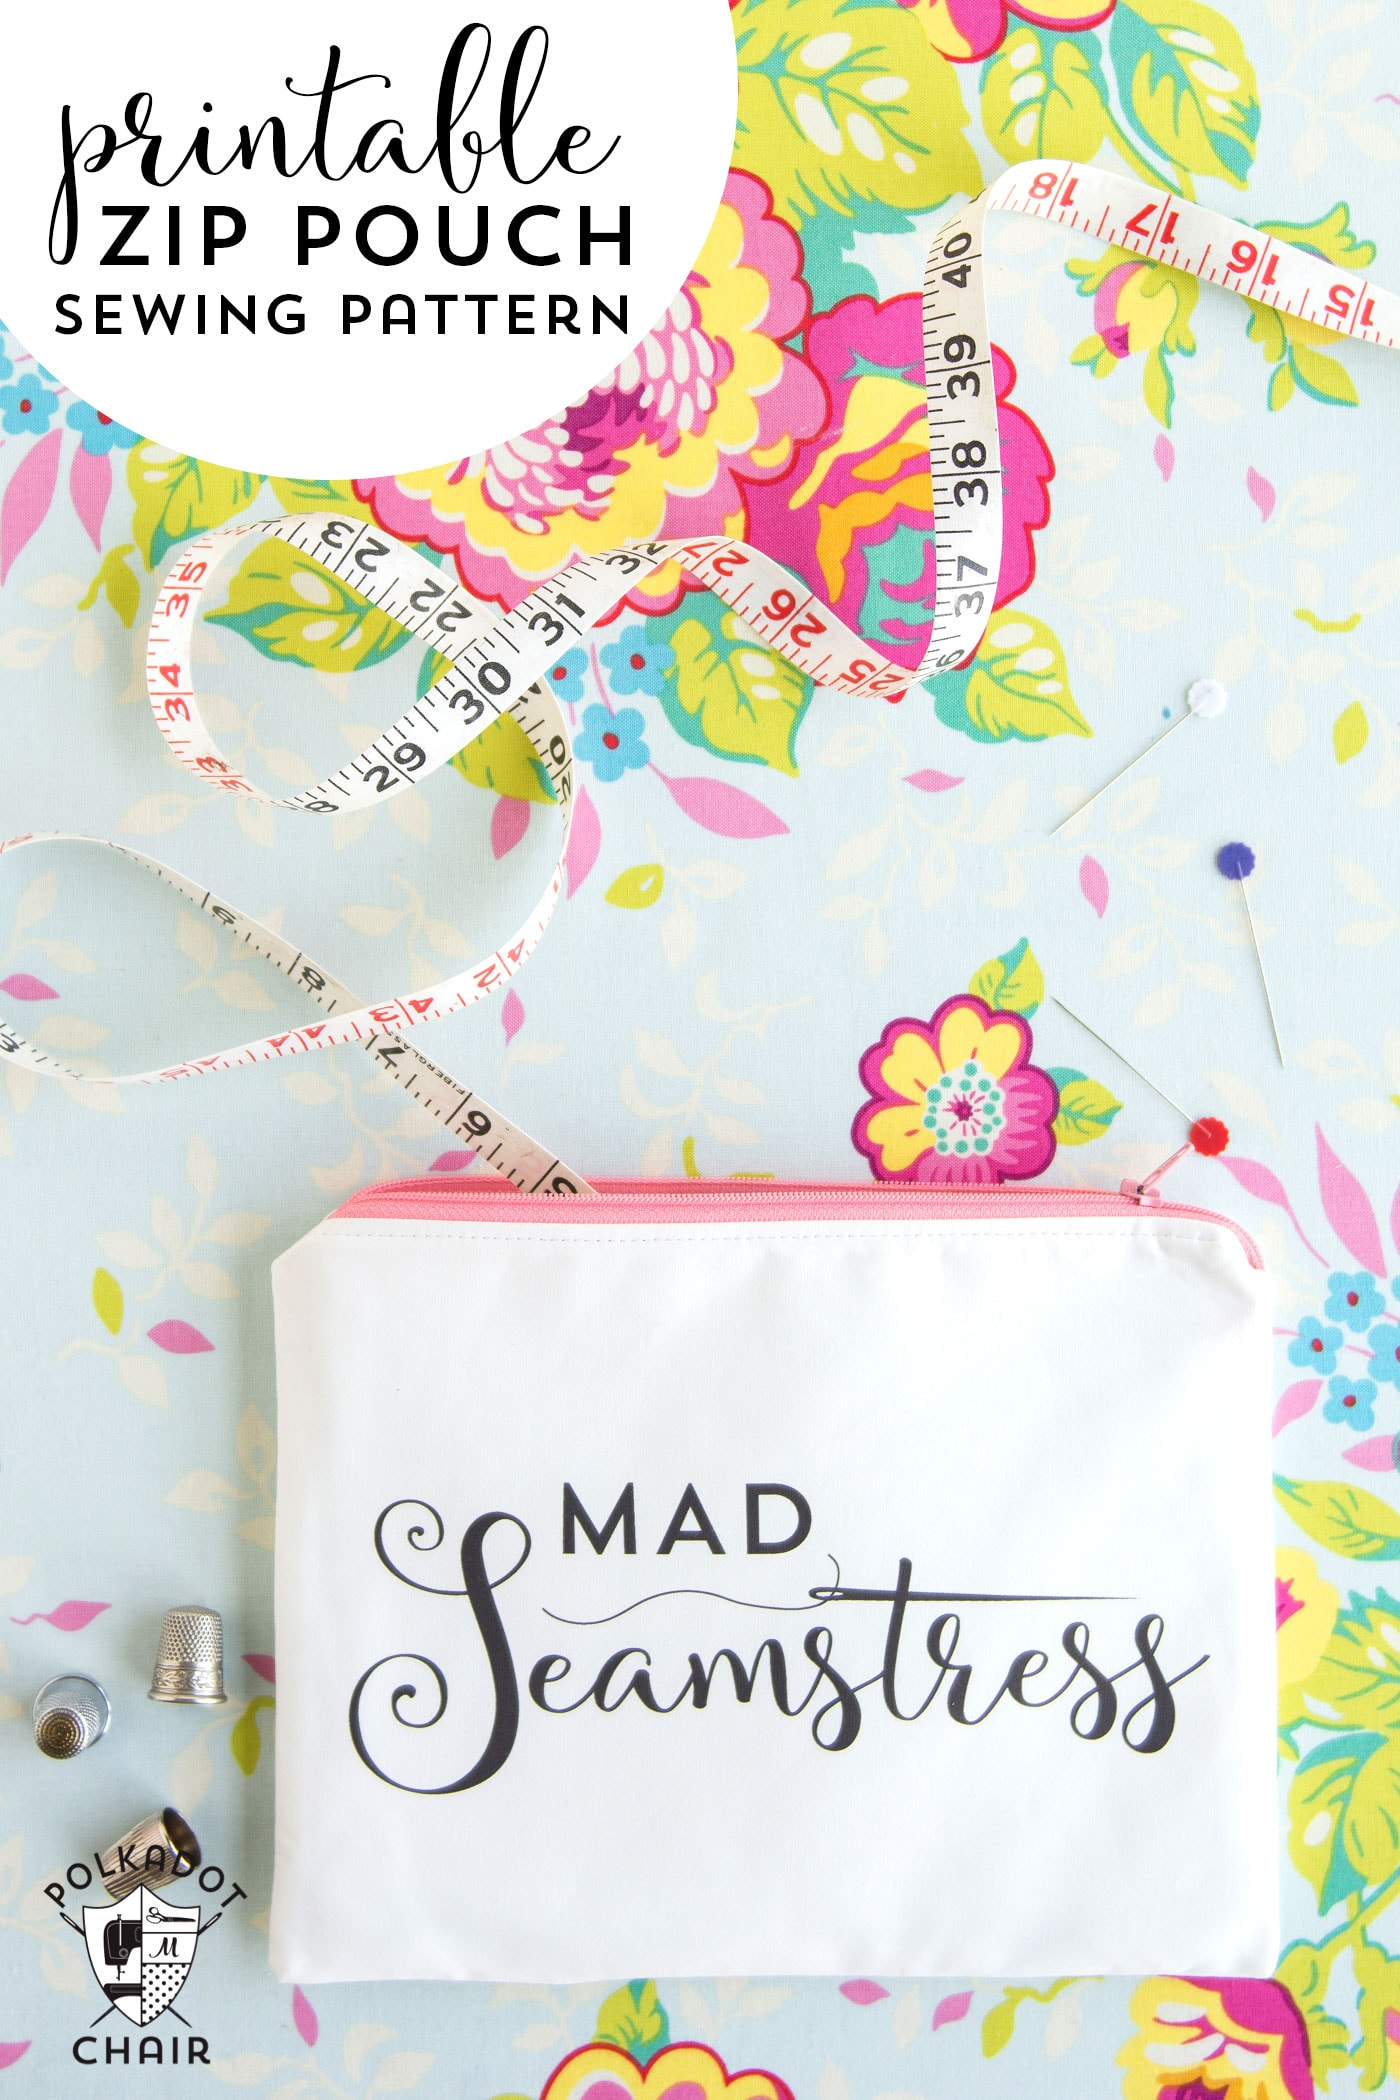 "Sewing tutorial to make this ""Mad Seamstress"" zip pouch. You can download the image and print it at home on fabric yourself!"